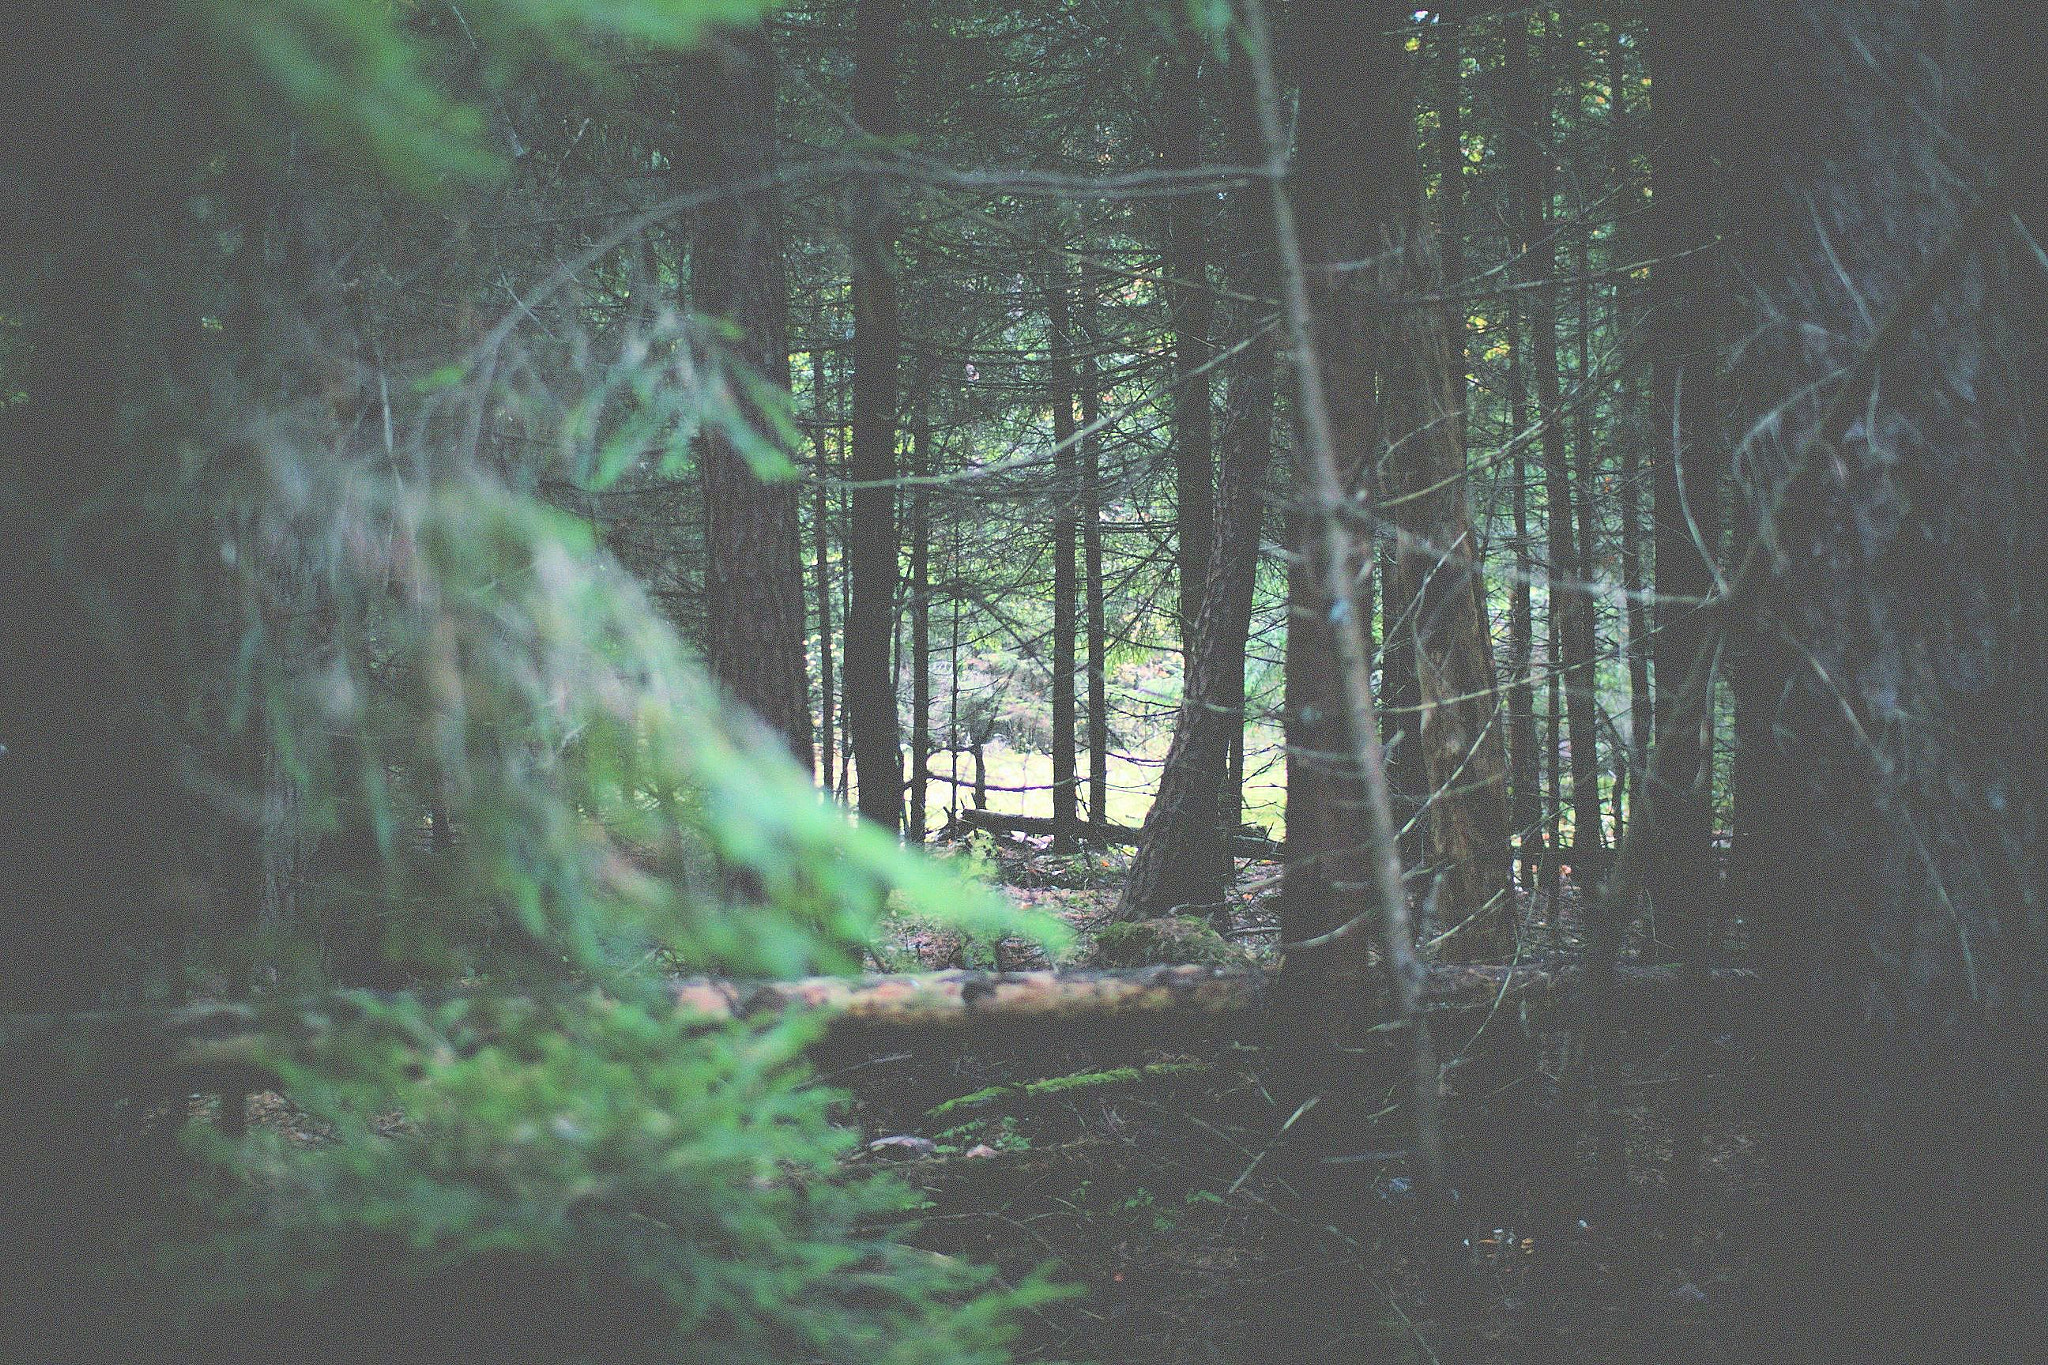 Photograph wood by Dasha Yuhnovets on 500px